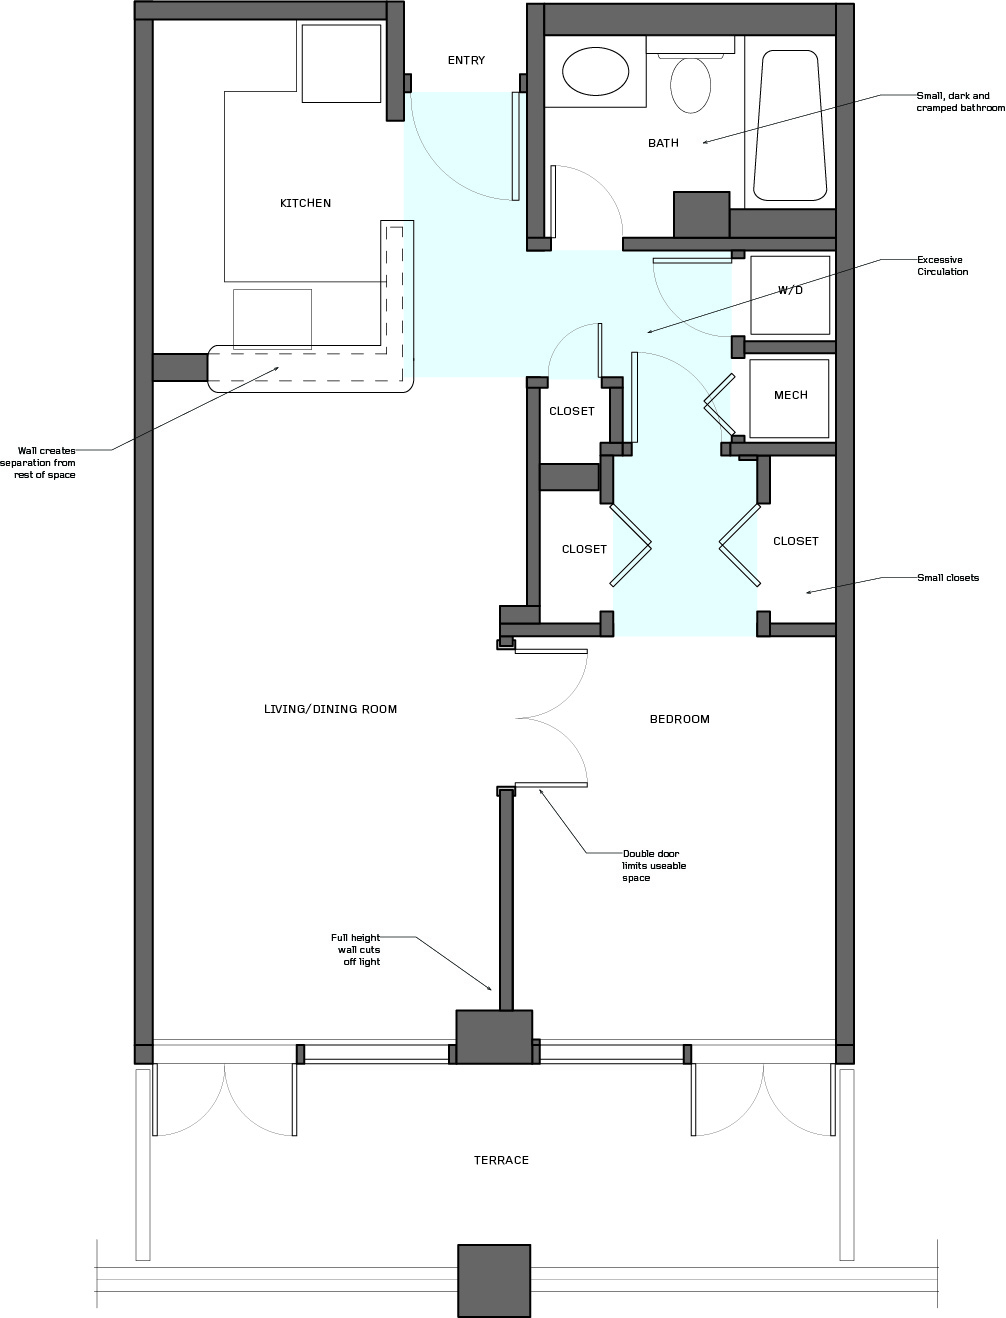 less is more again making the most of small apartment spaces floor plan before leaves lots of wasted space